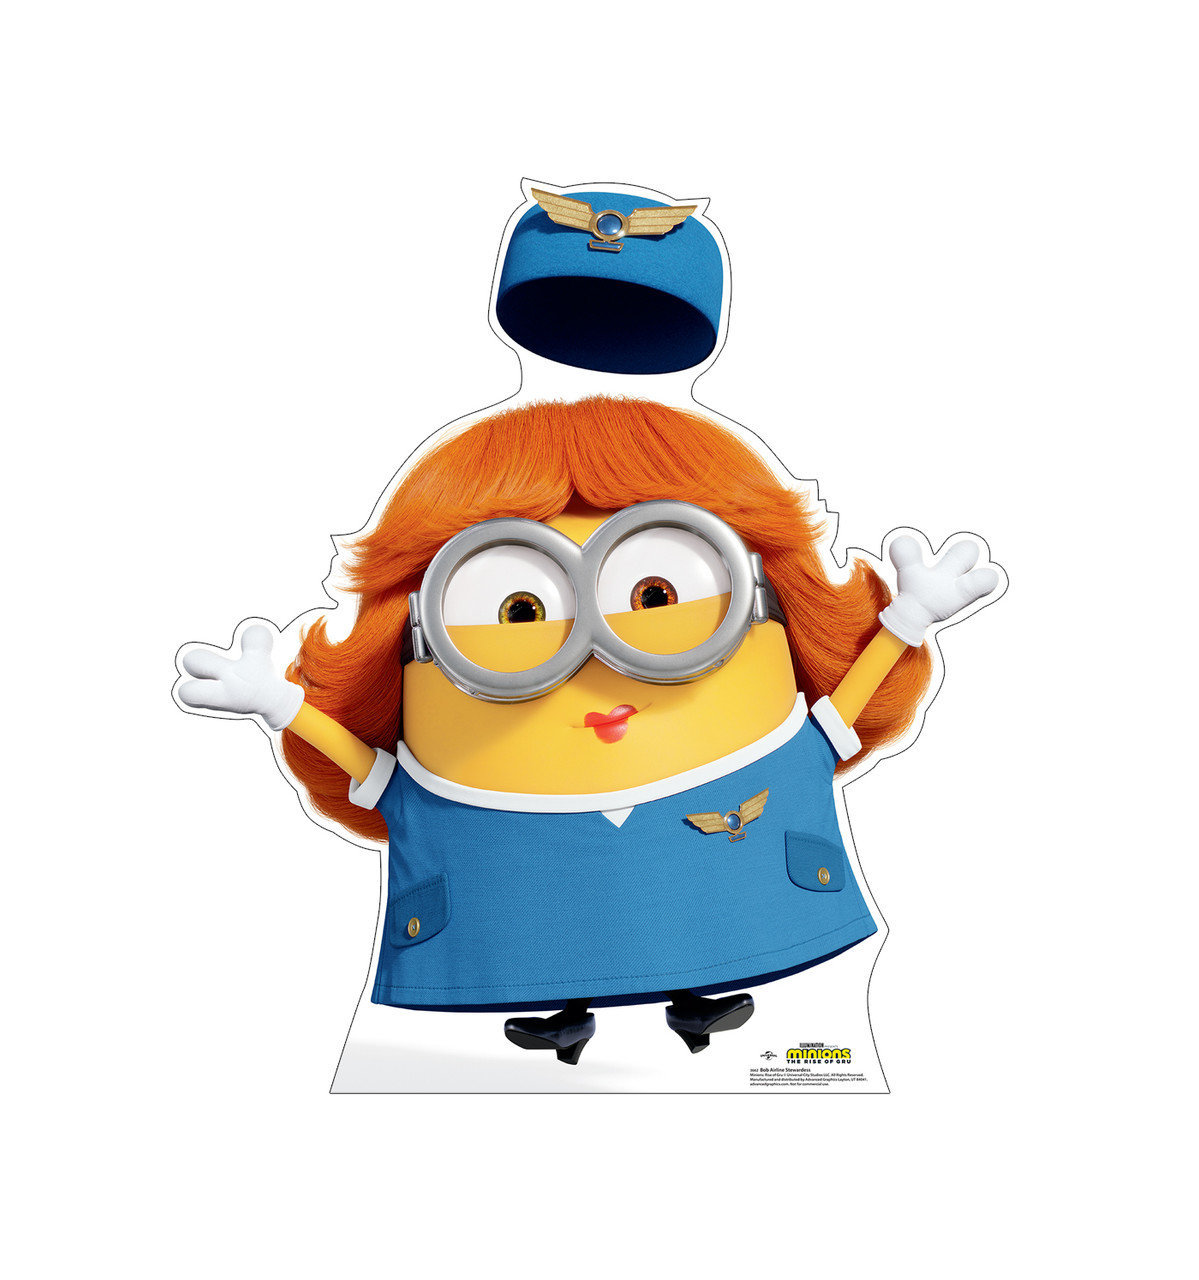 Life-size cardboard standee of Bob Airline Stewardess from the new movie Minions Rise of Gru.